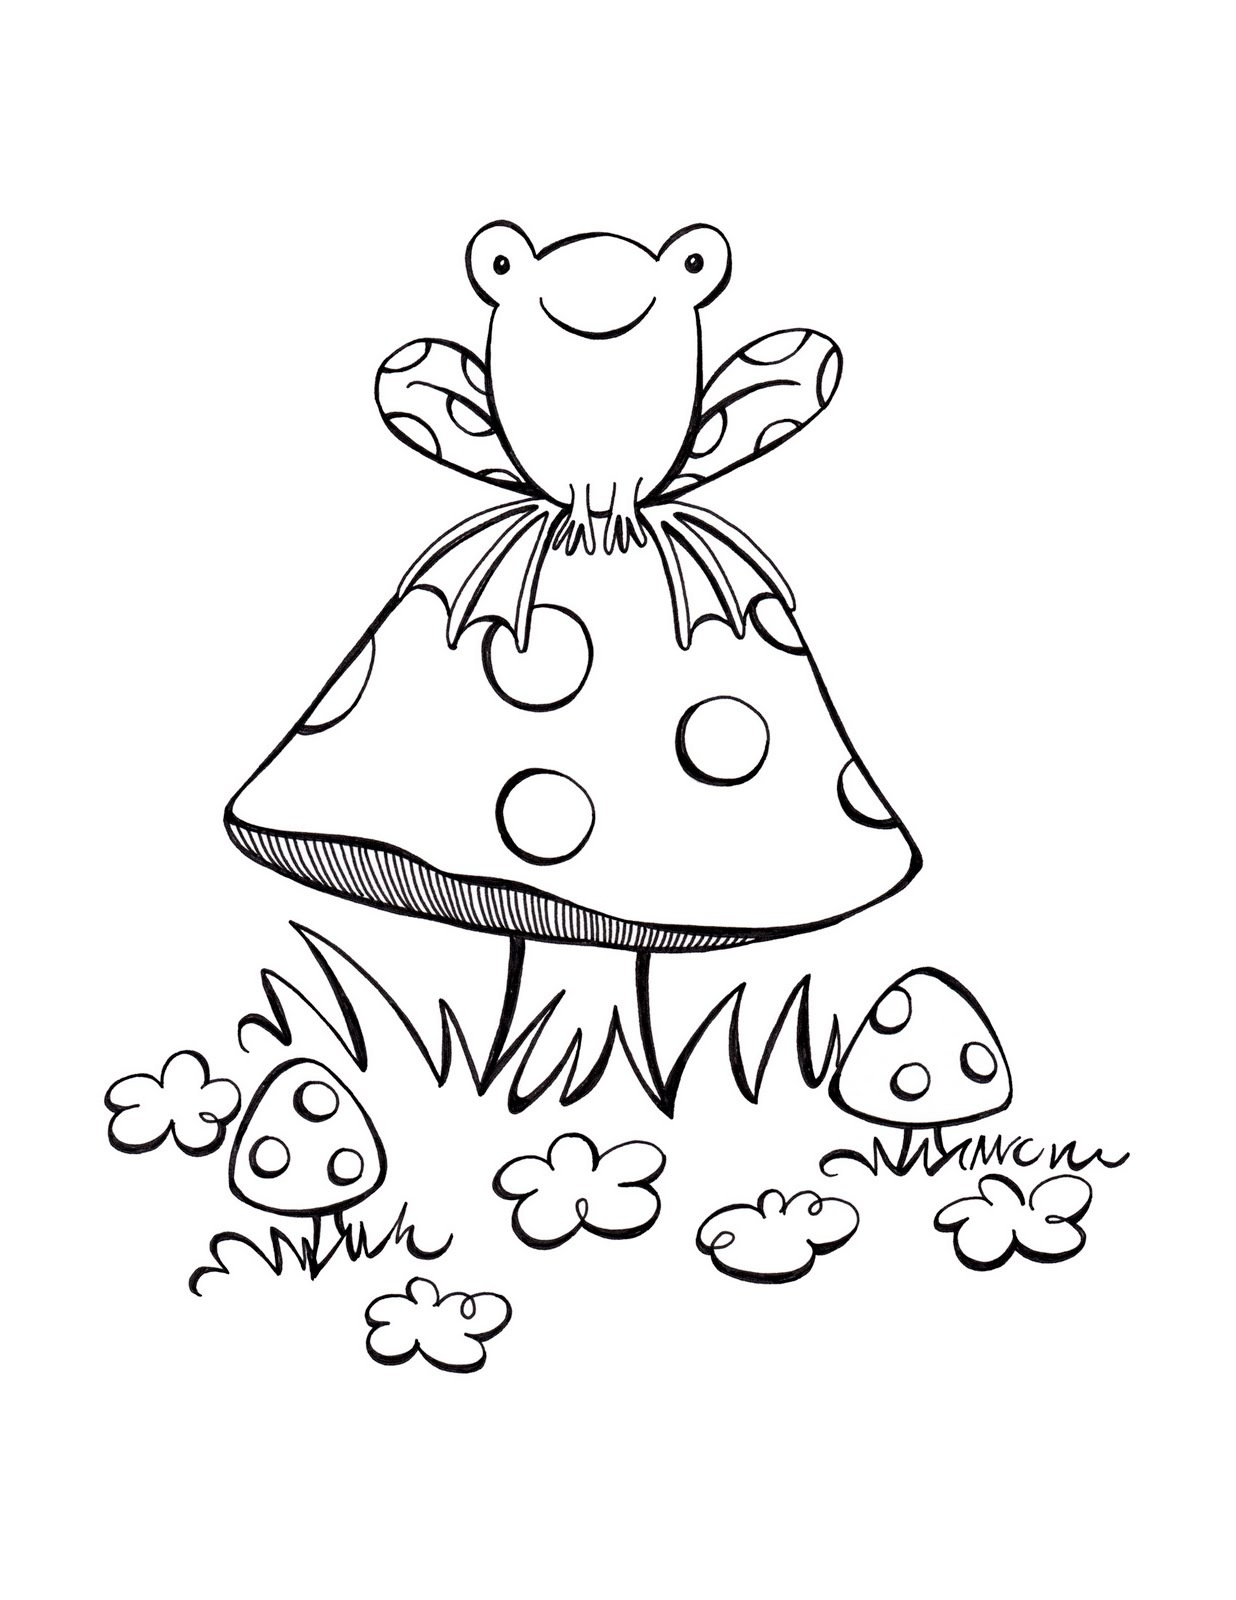 fungus coloring pages - photo#30